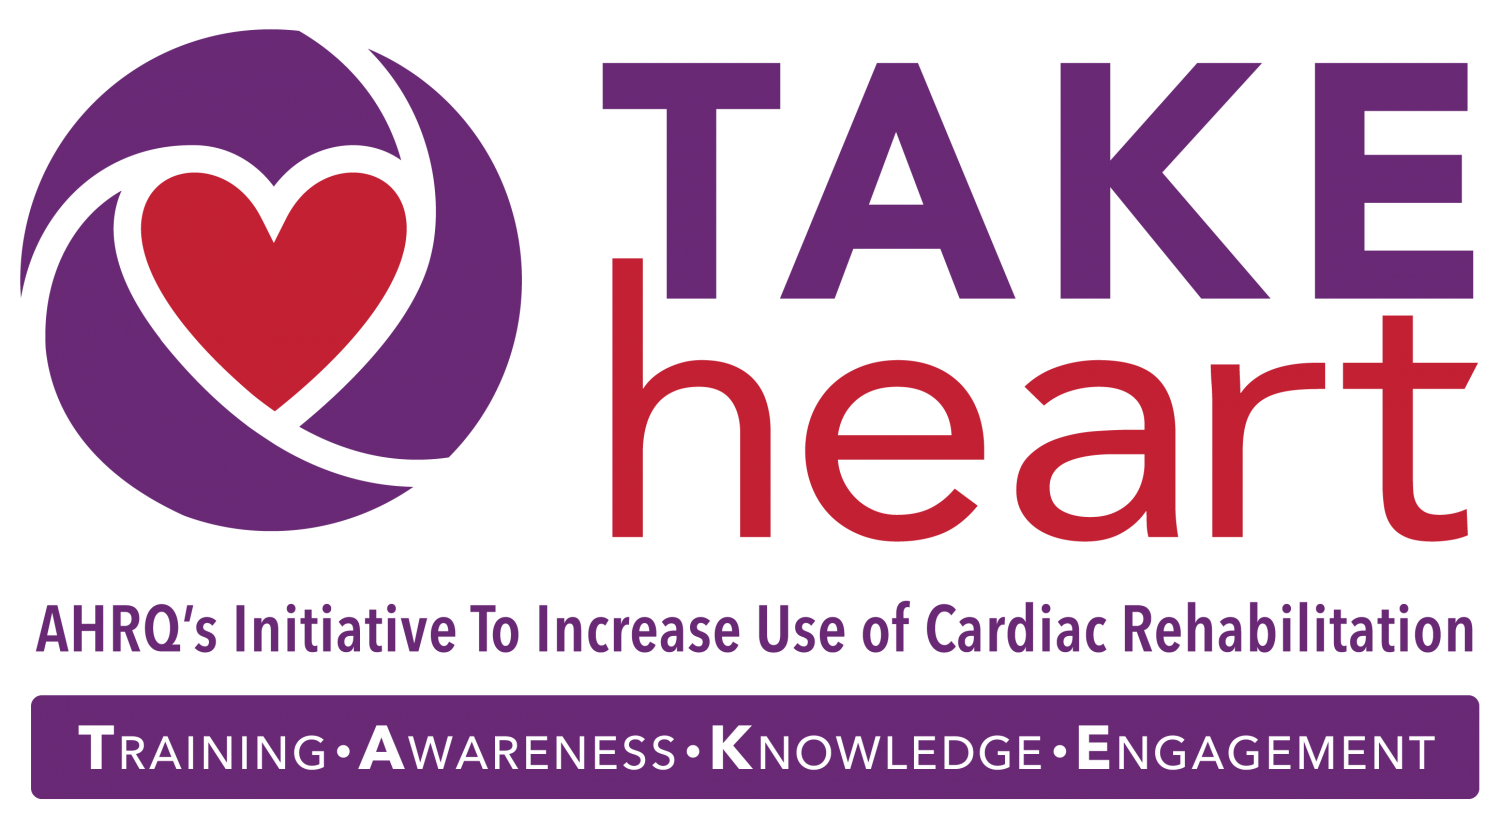 TAKEheart: AHRQ's Initiative to Increase Cardiac Rehabilitation logo